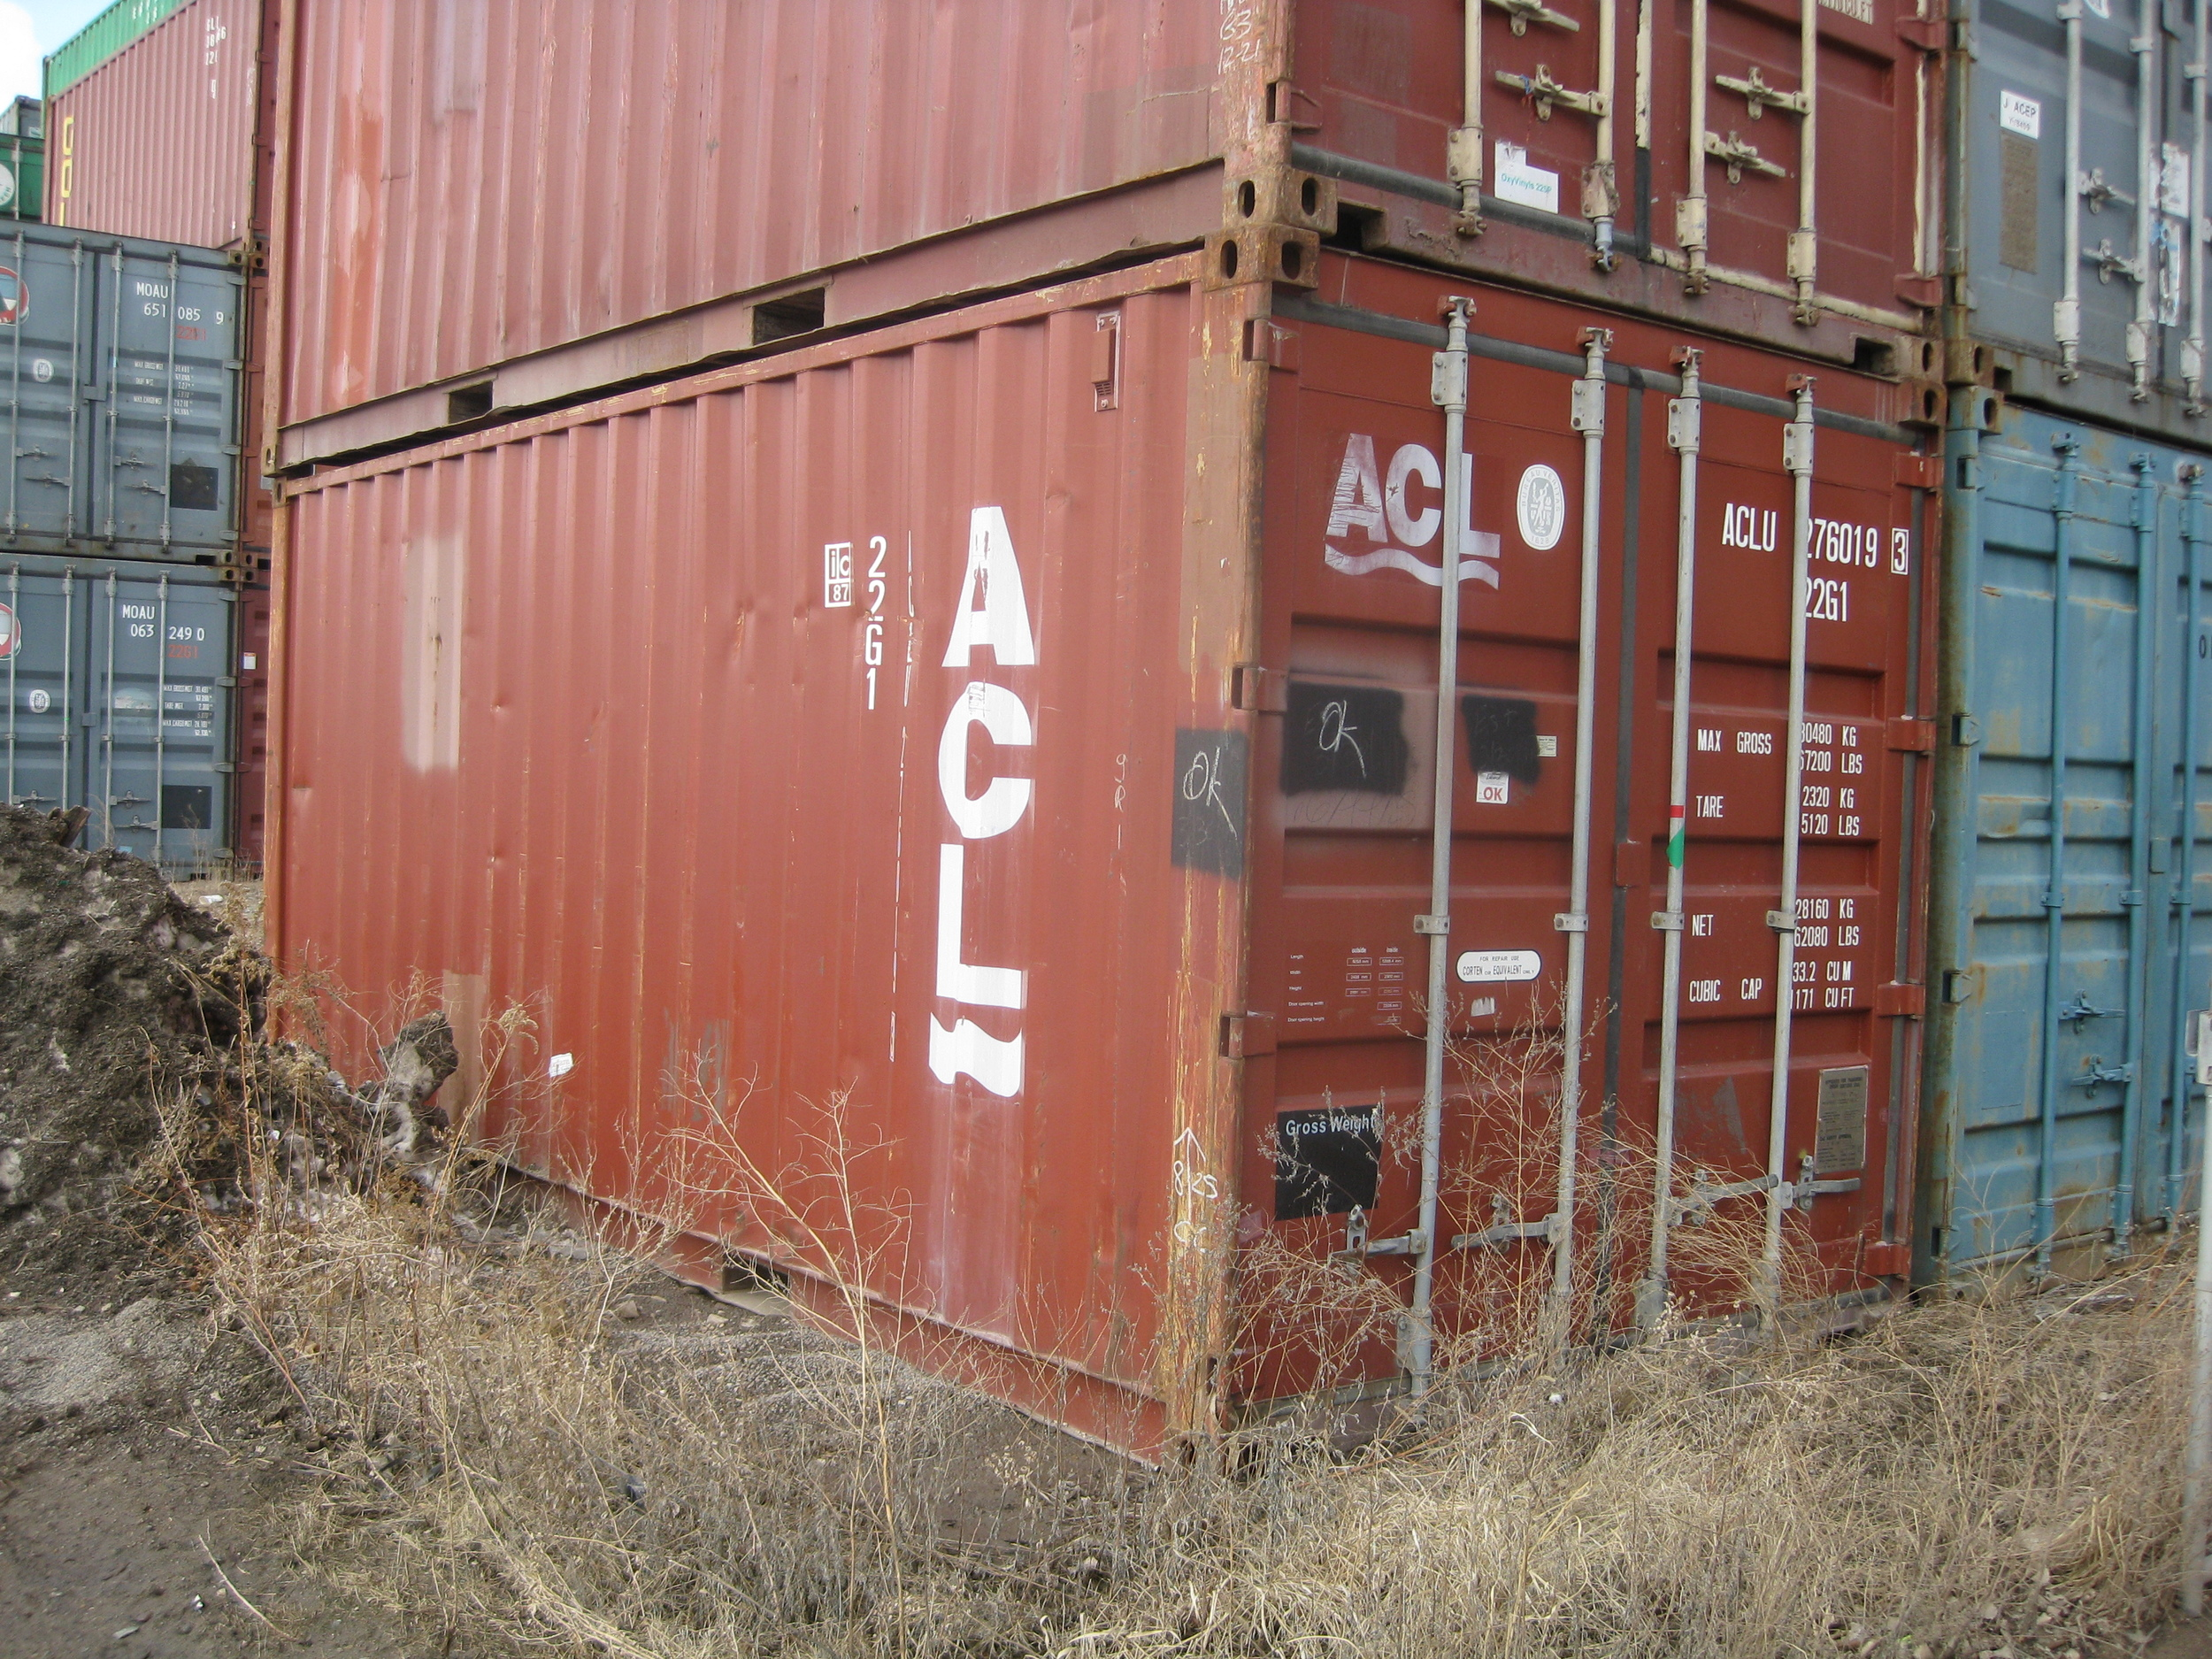 Used brown 20' container